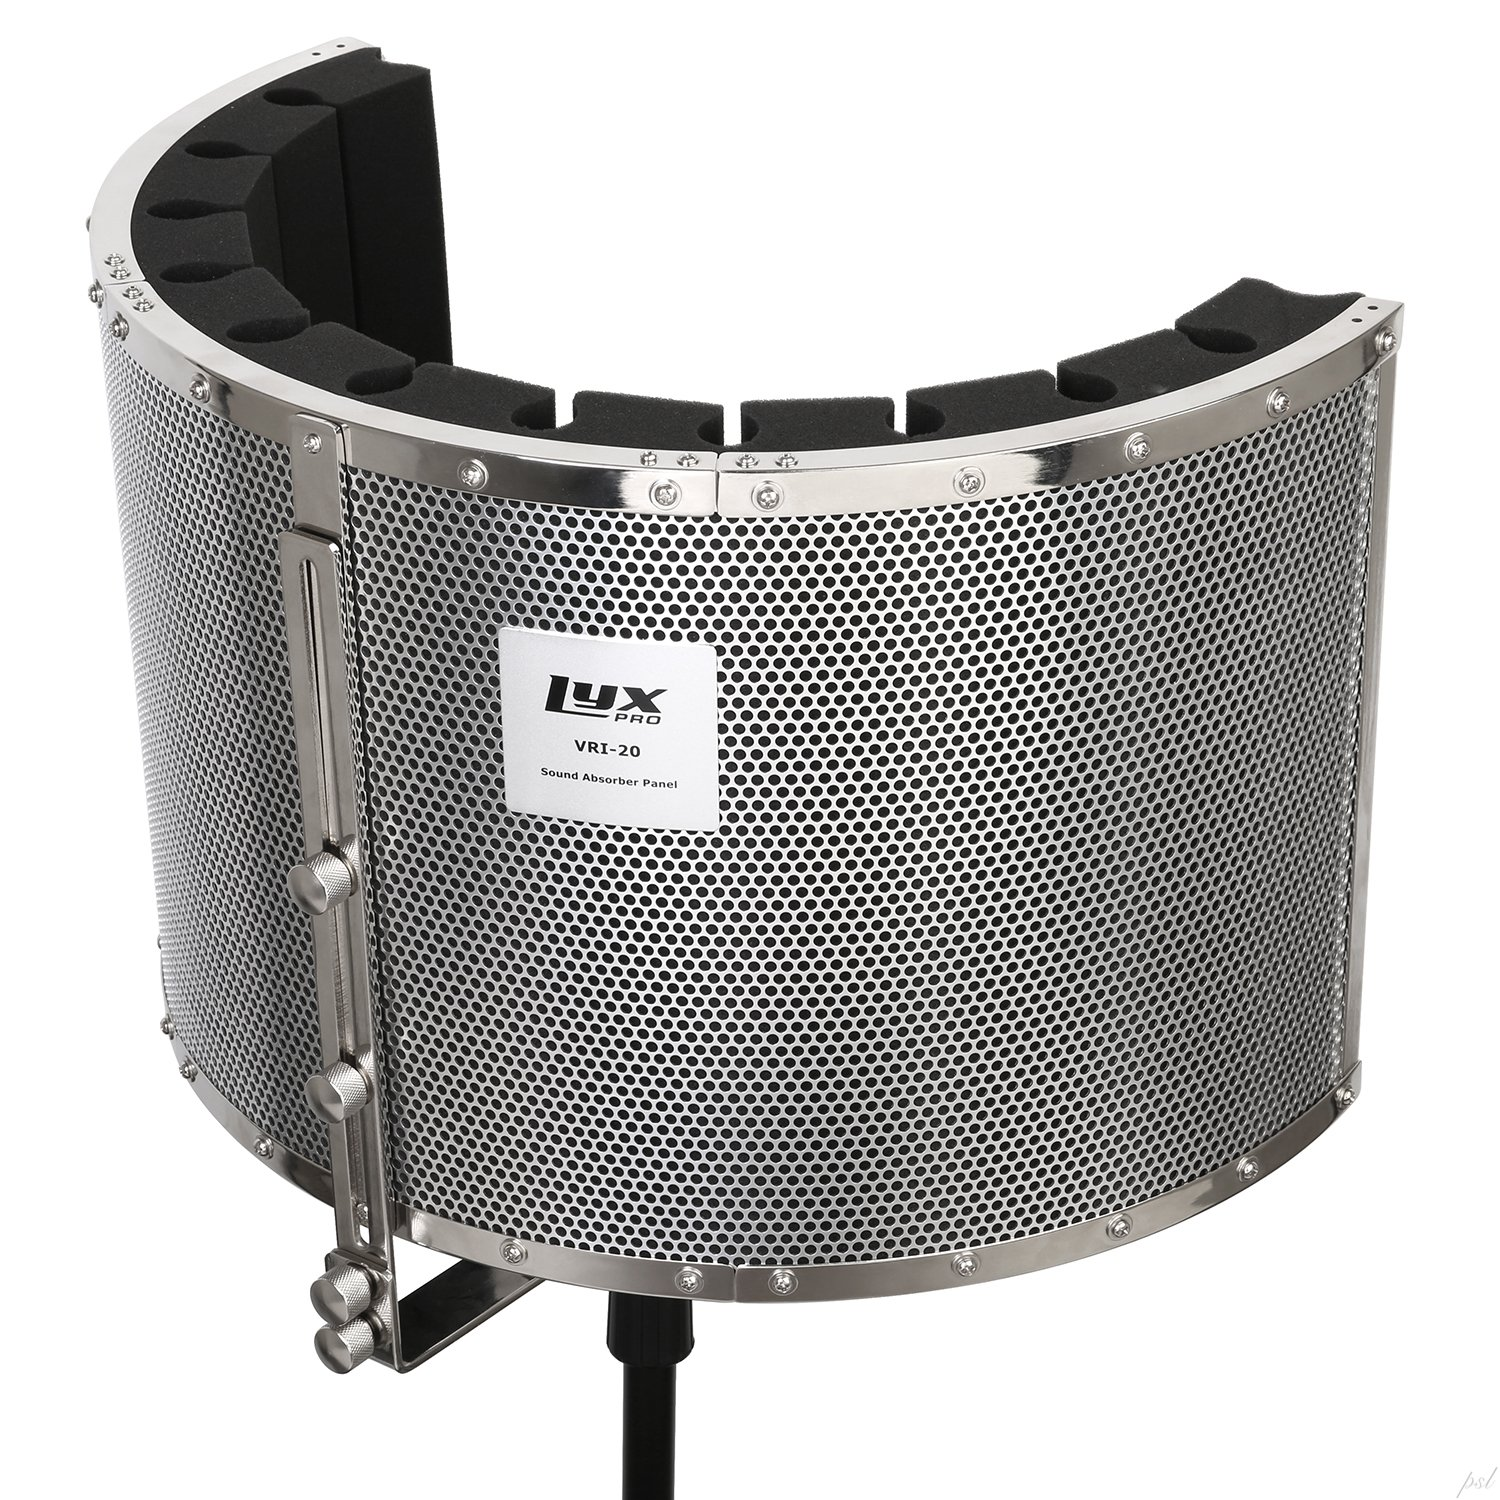 LyxPro VRI-20 Portable Acoustic Foam Isolation Microphone Shield, Sound Absorbing, Vocal Recording Panel, High Performance - Stand Mount by LyxPro